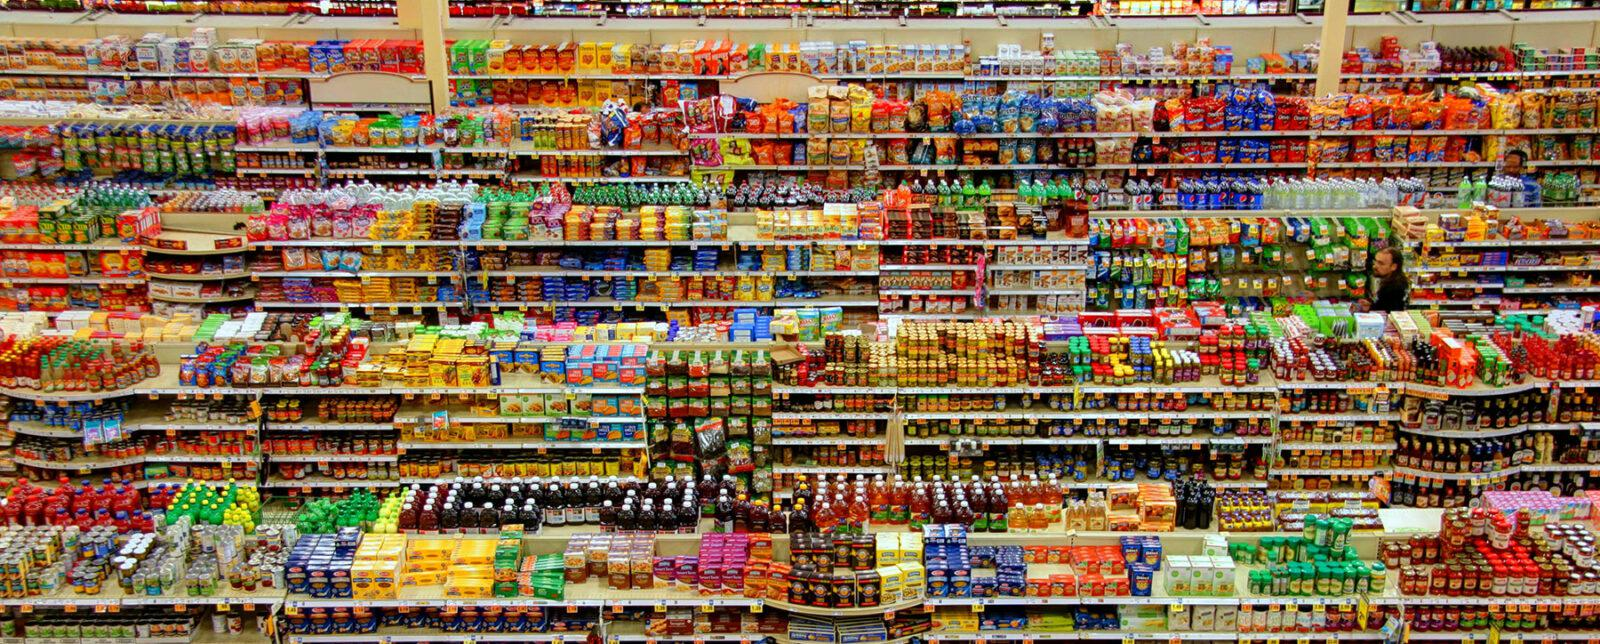 The Supply Chain in Retail: Advocacy for a Return of Shelf Space to the Heart of the System